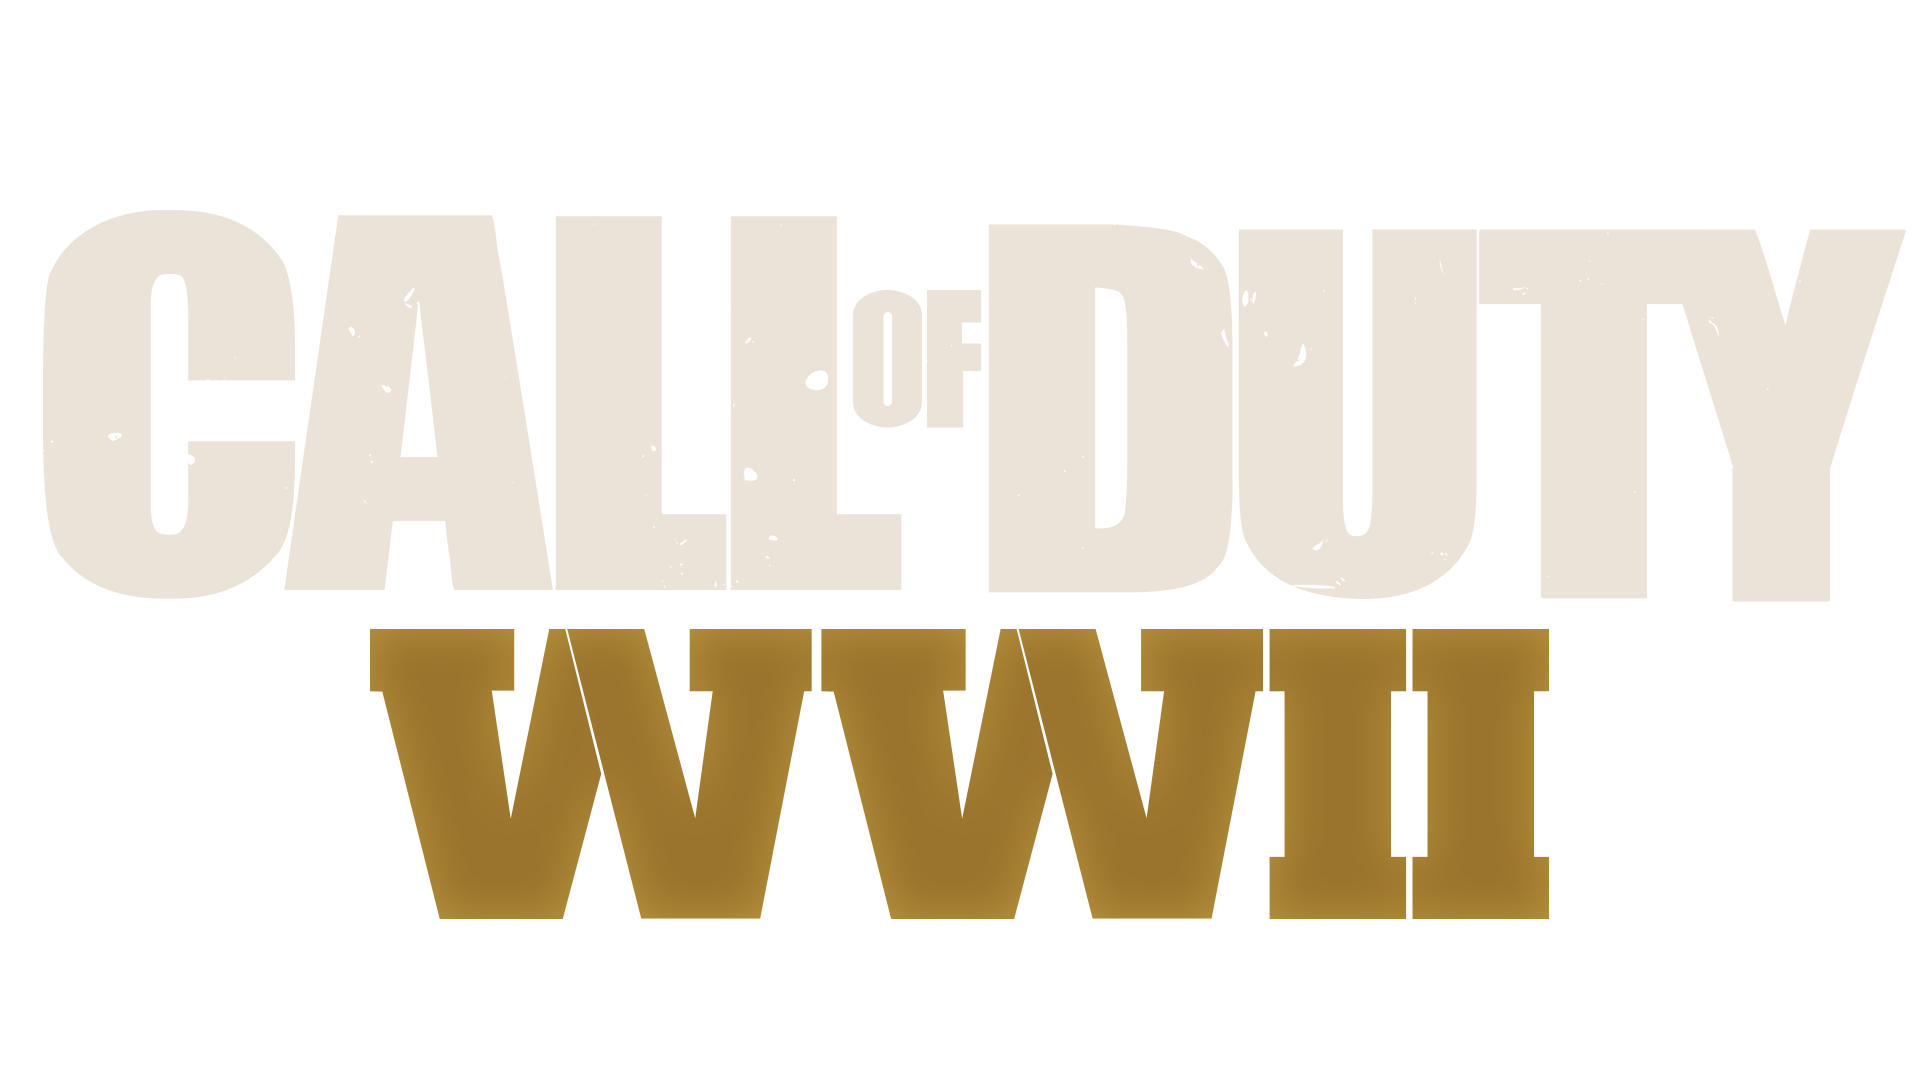 Call of duty ww2 zombies logo png. Ww wwii bhl gaming